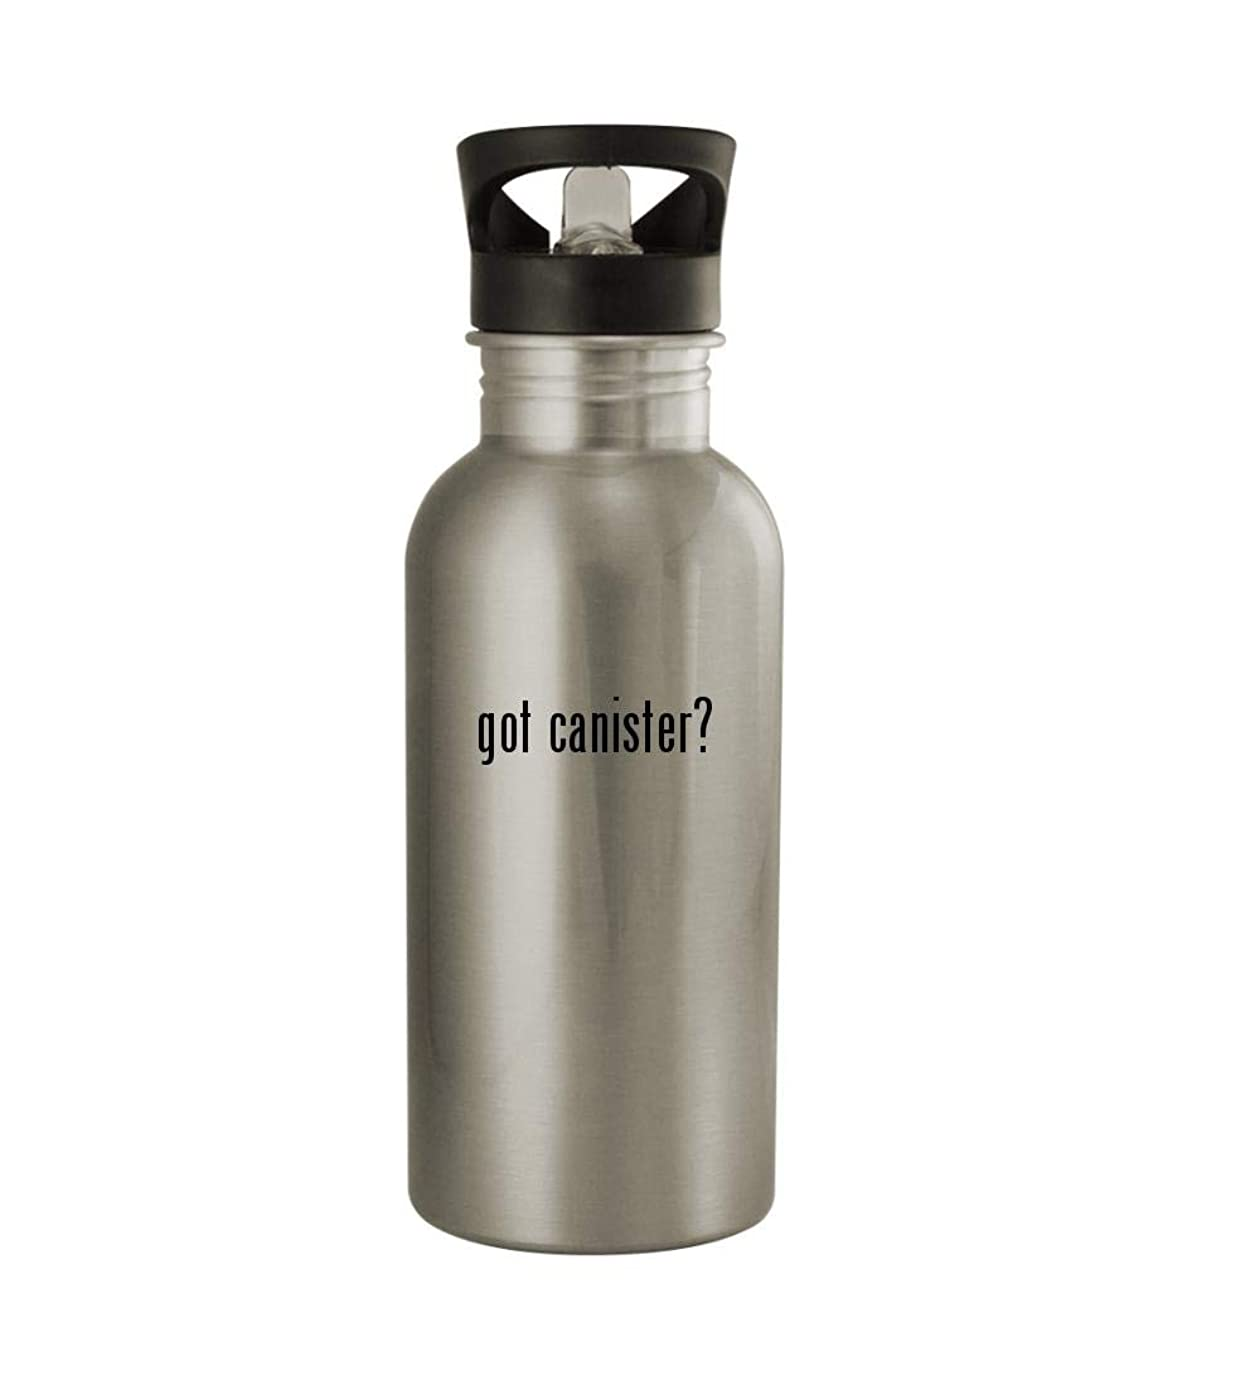 Knick Knack Gifts got Canister? - 20oz Sturdy Stainless Steel Water Bottle